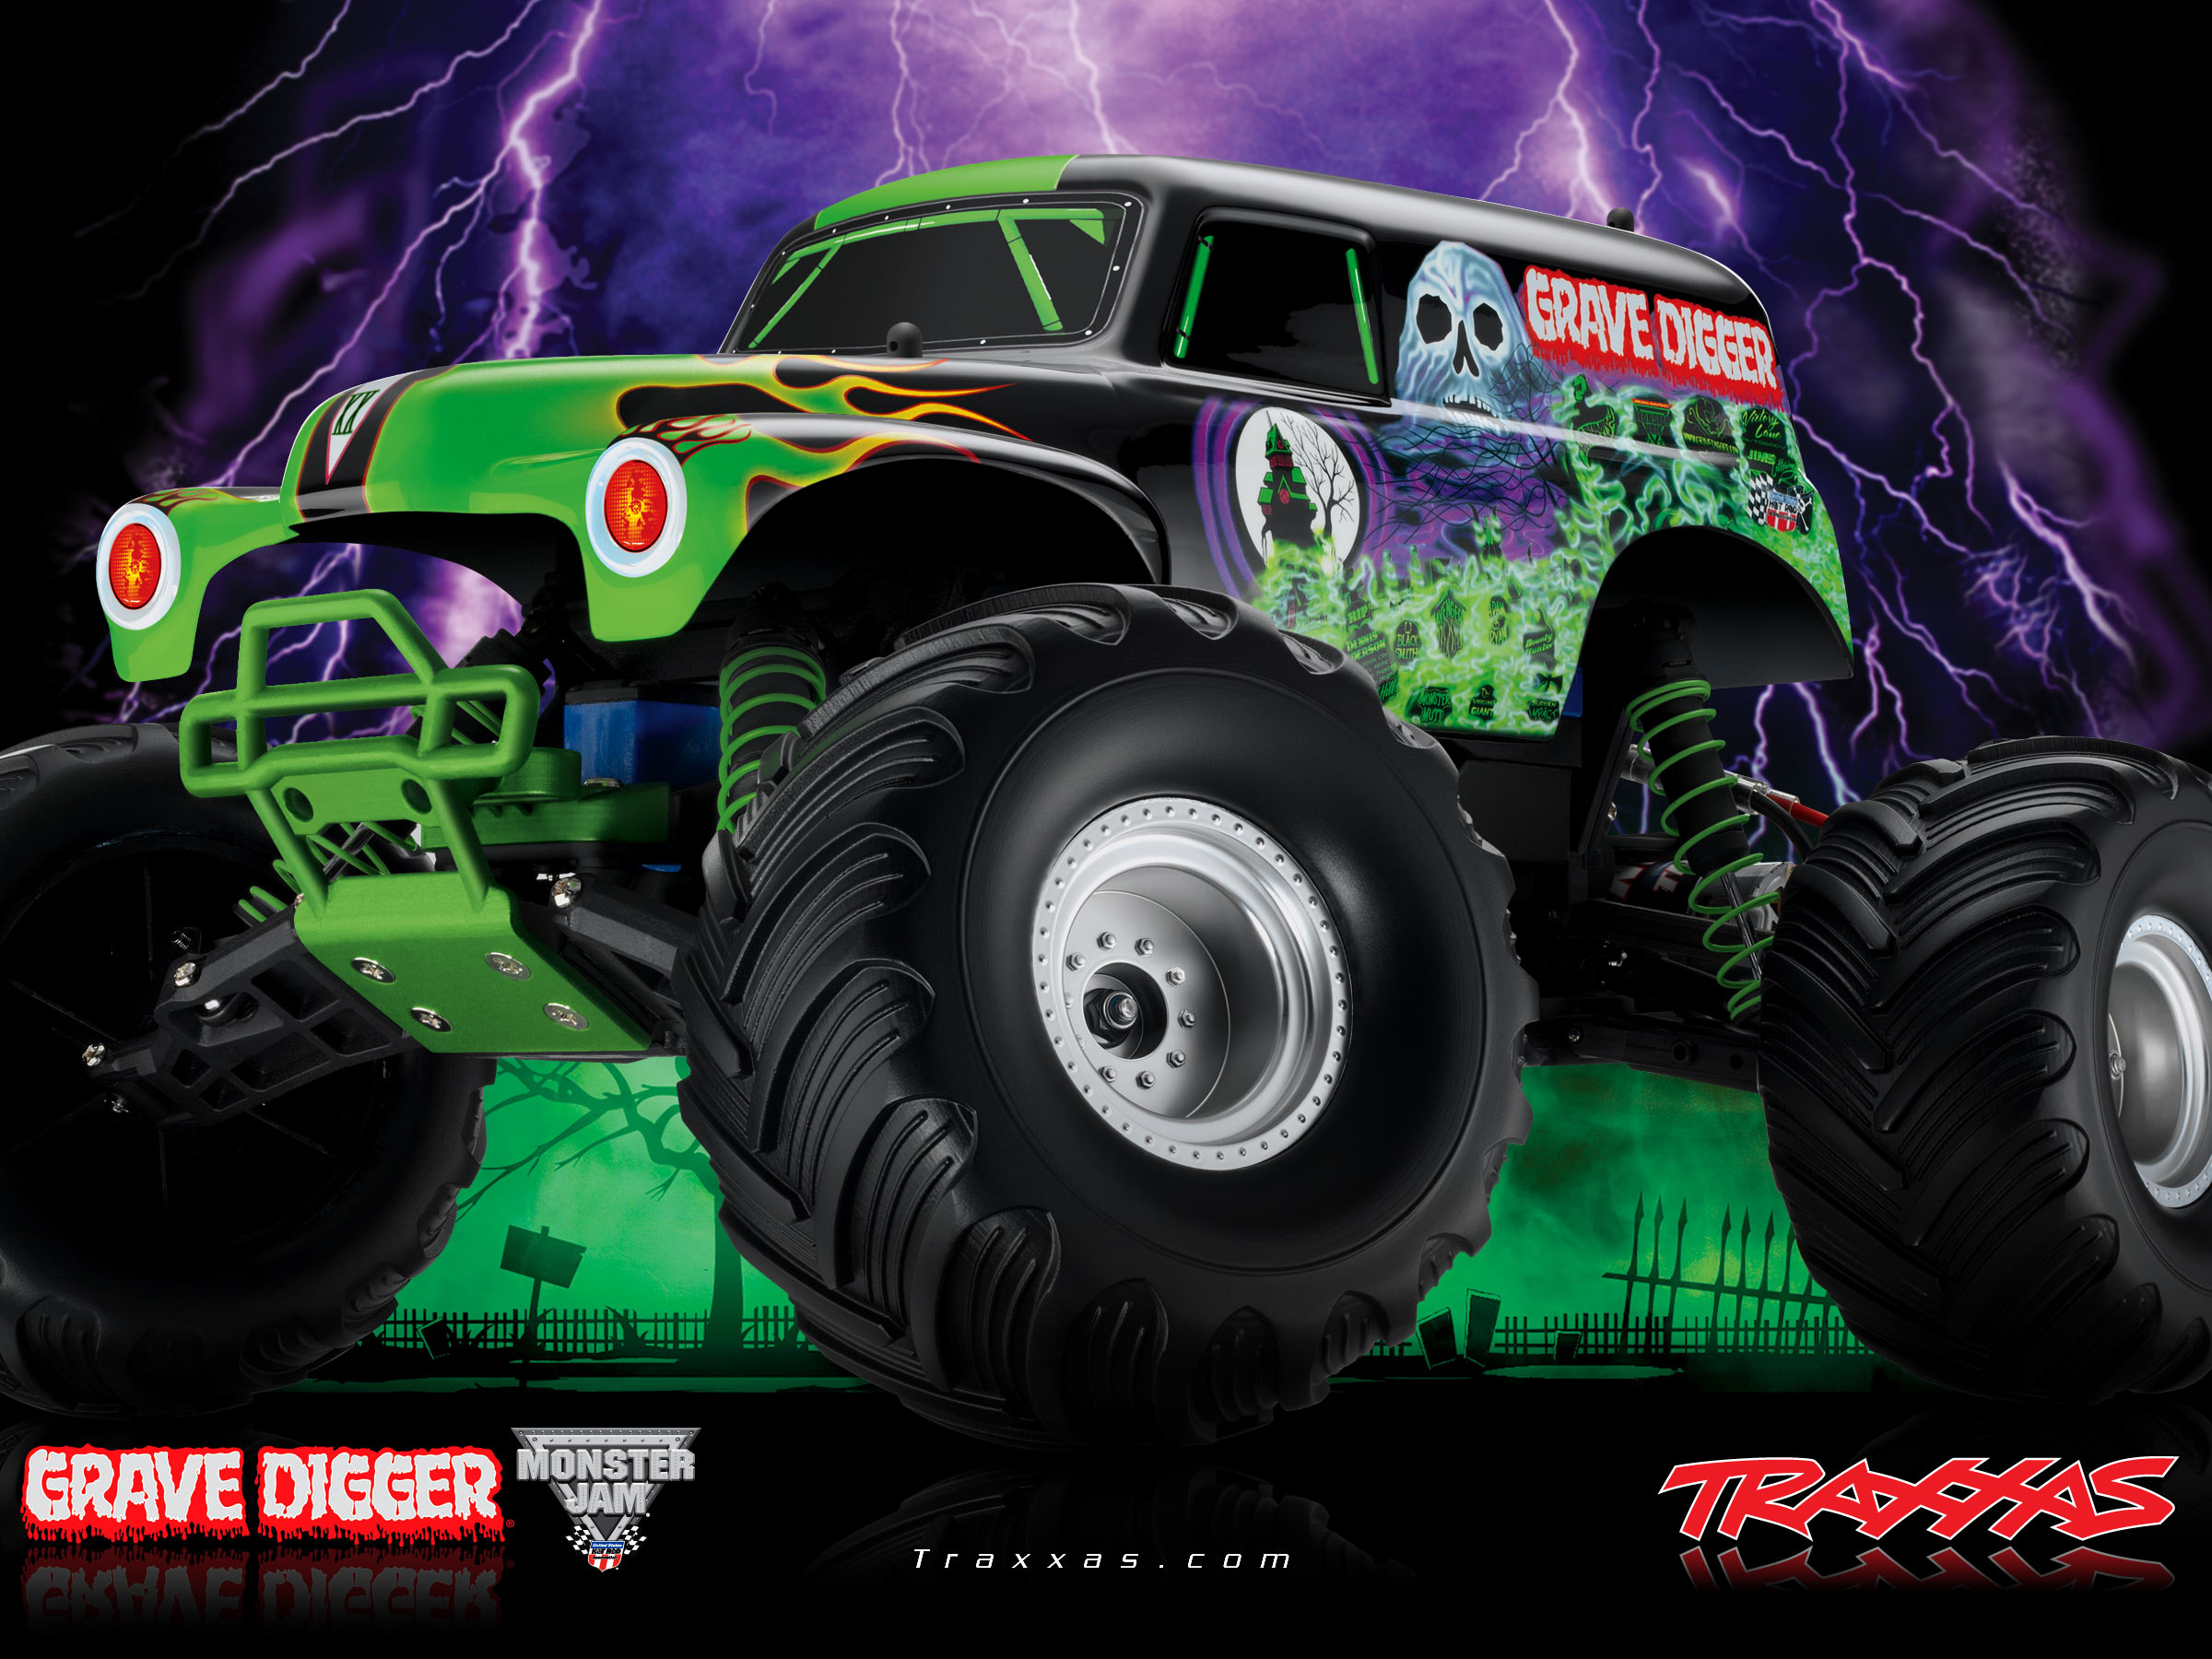 45 Grave Digger Monster Truck Wallpaper On Wallpapersafari